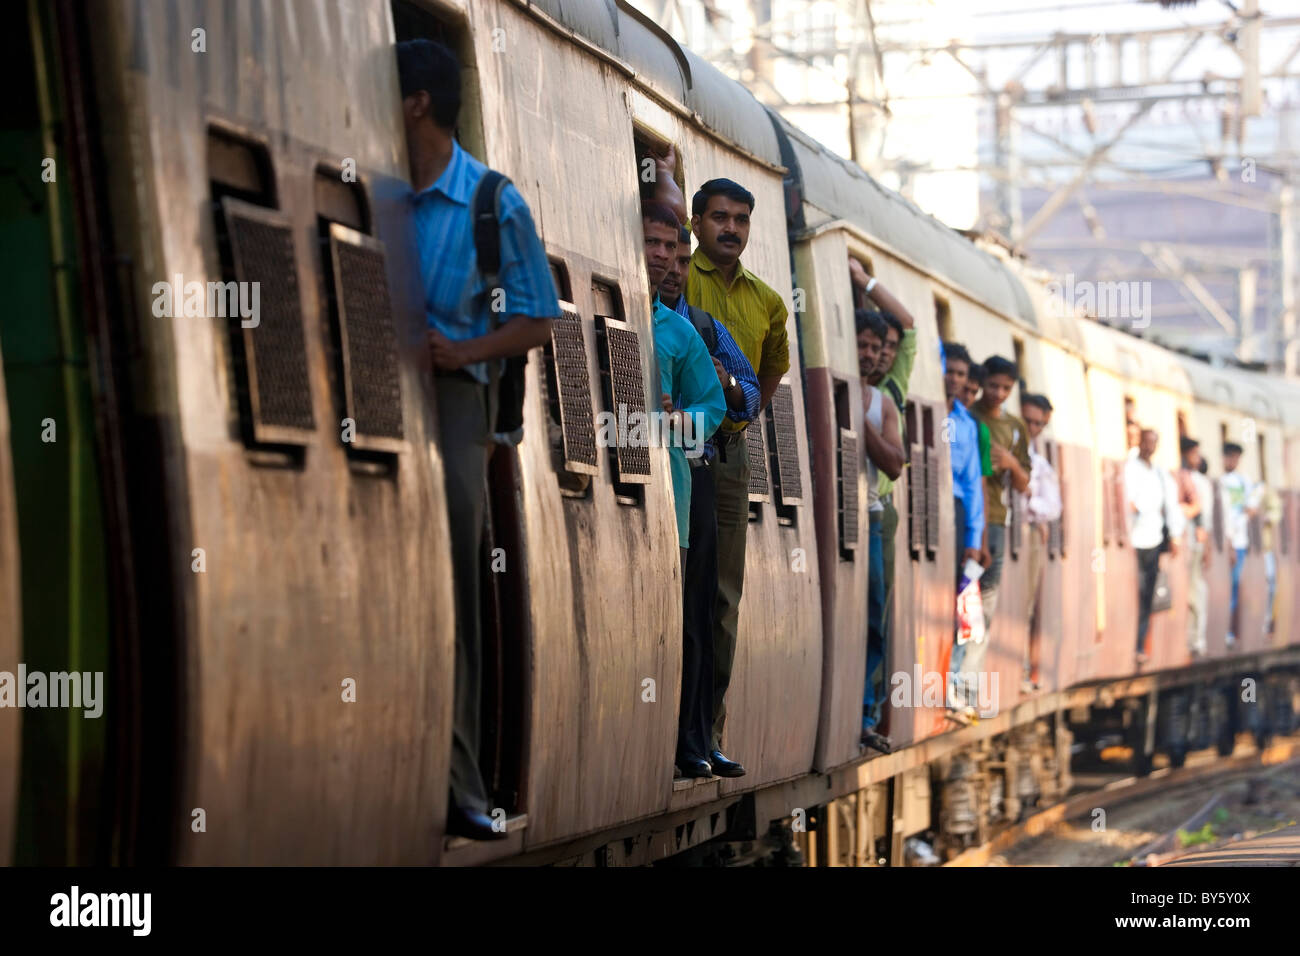 Commuters, Victoria or CST train station, Mumbai, India - Stock Image